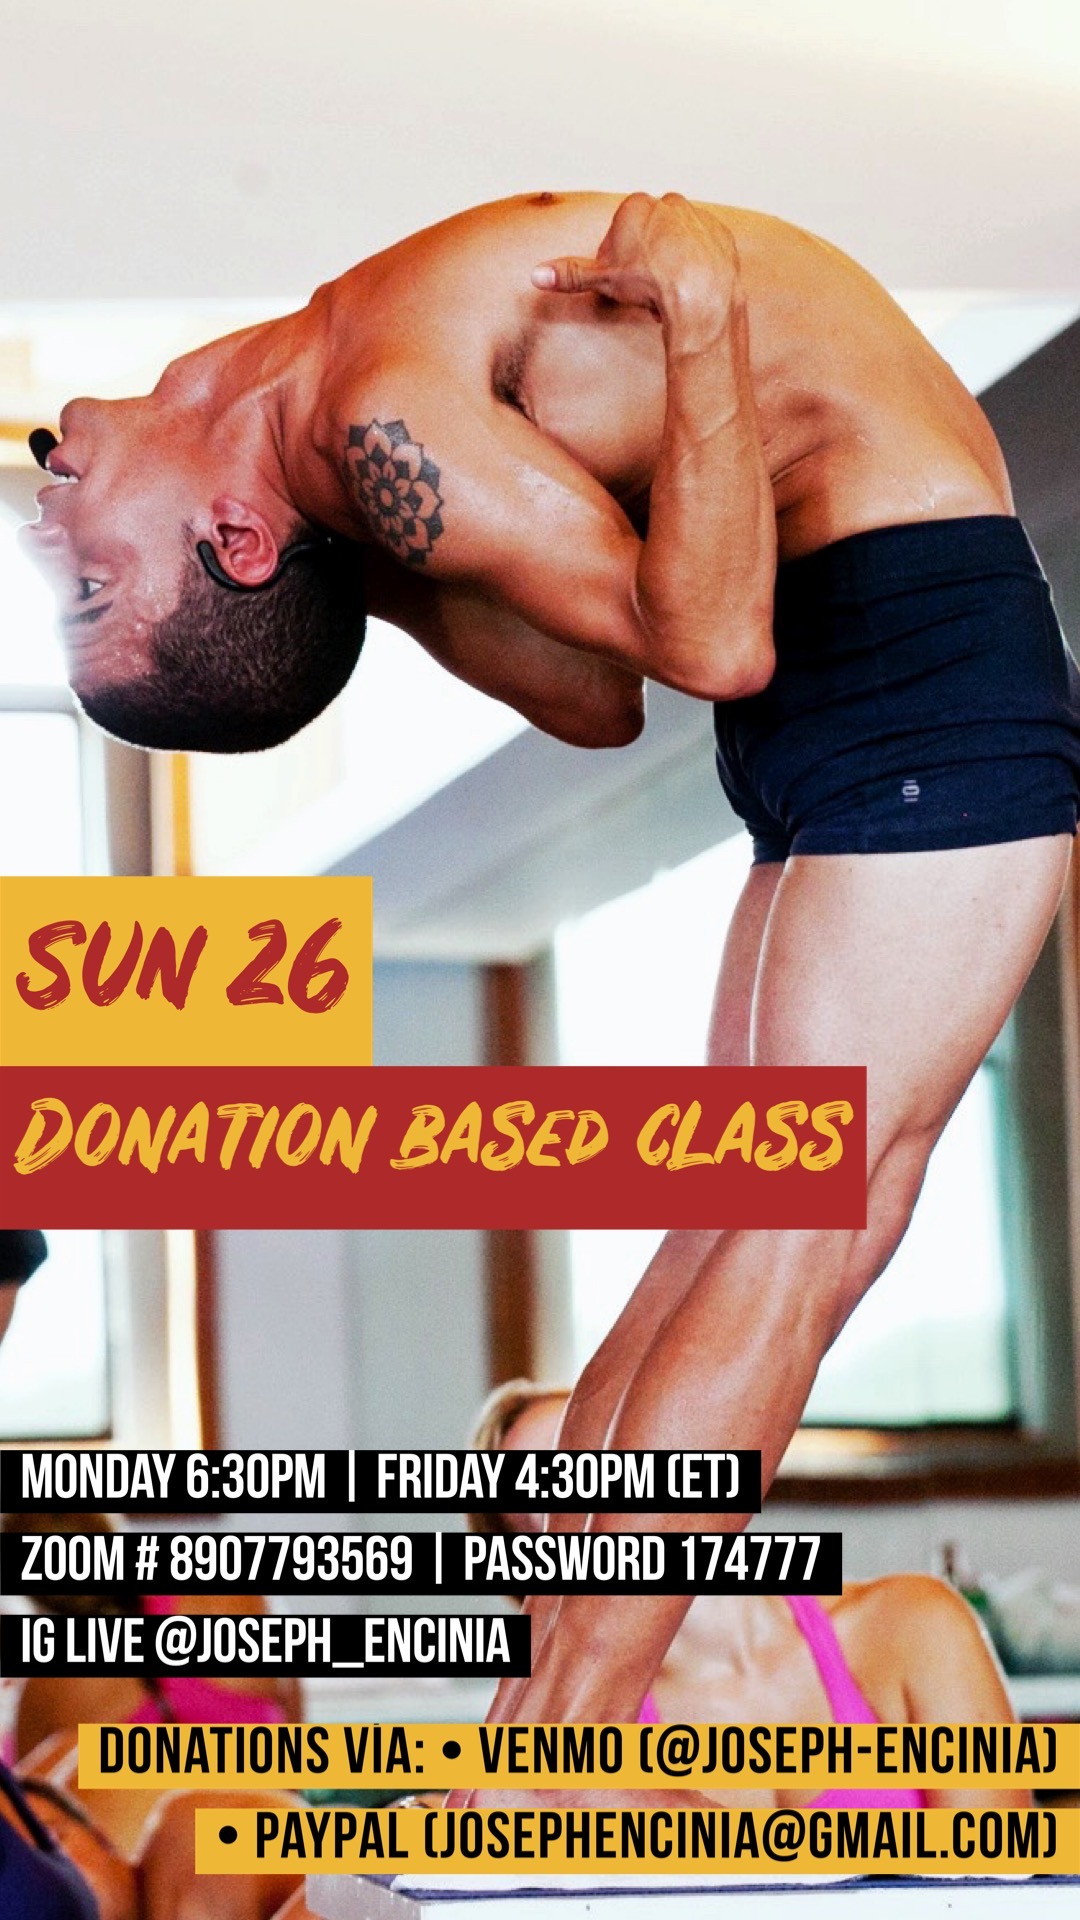 LIVE YOGA CLASSES FOR ALL